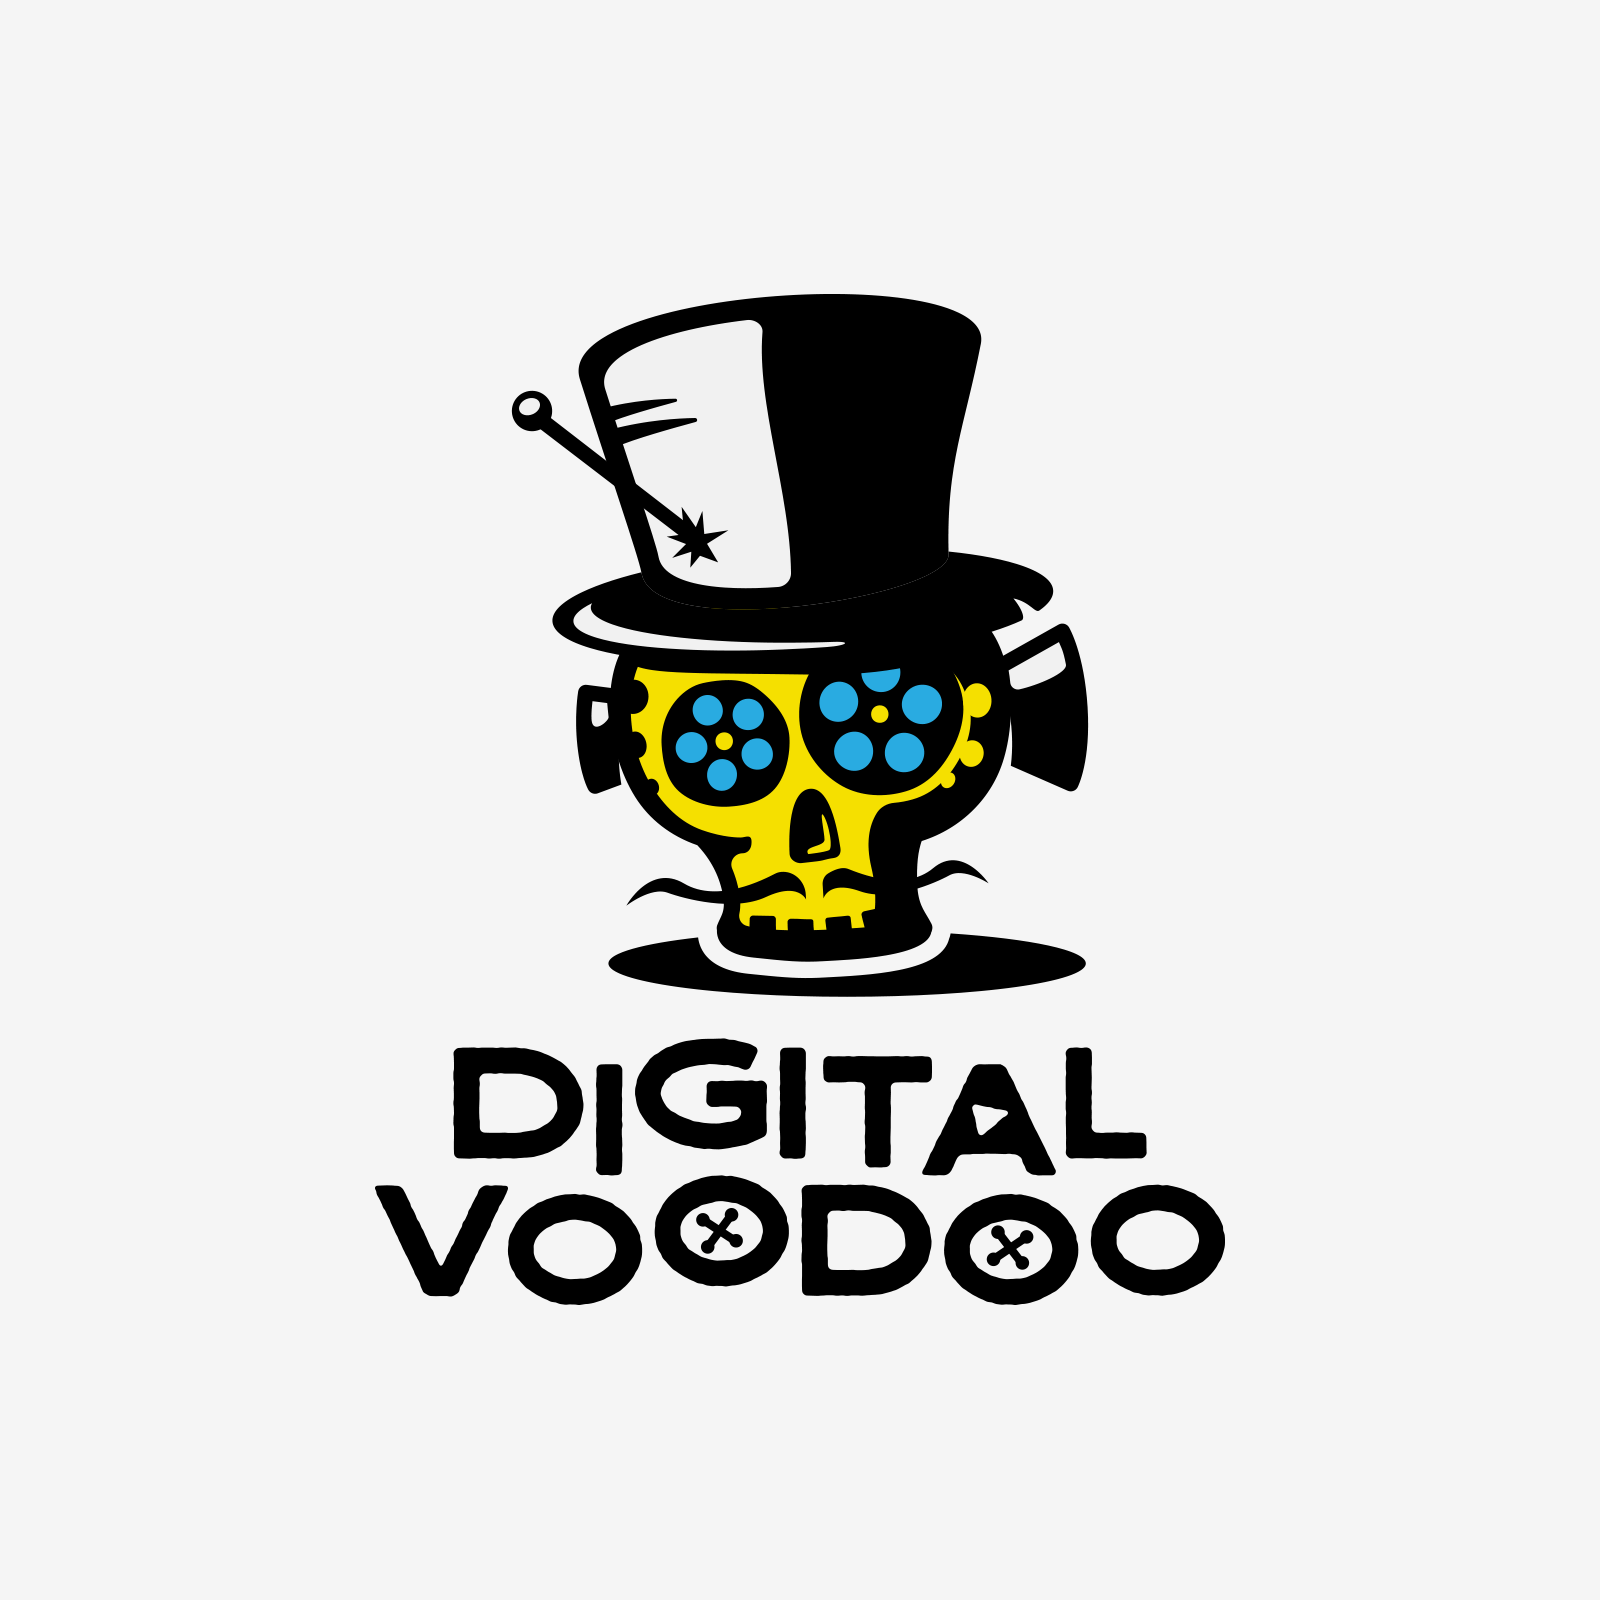 Logo design proposal for Digital Voodoo